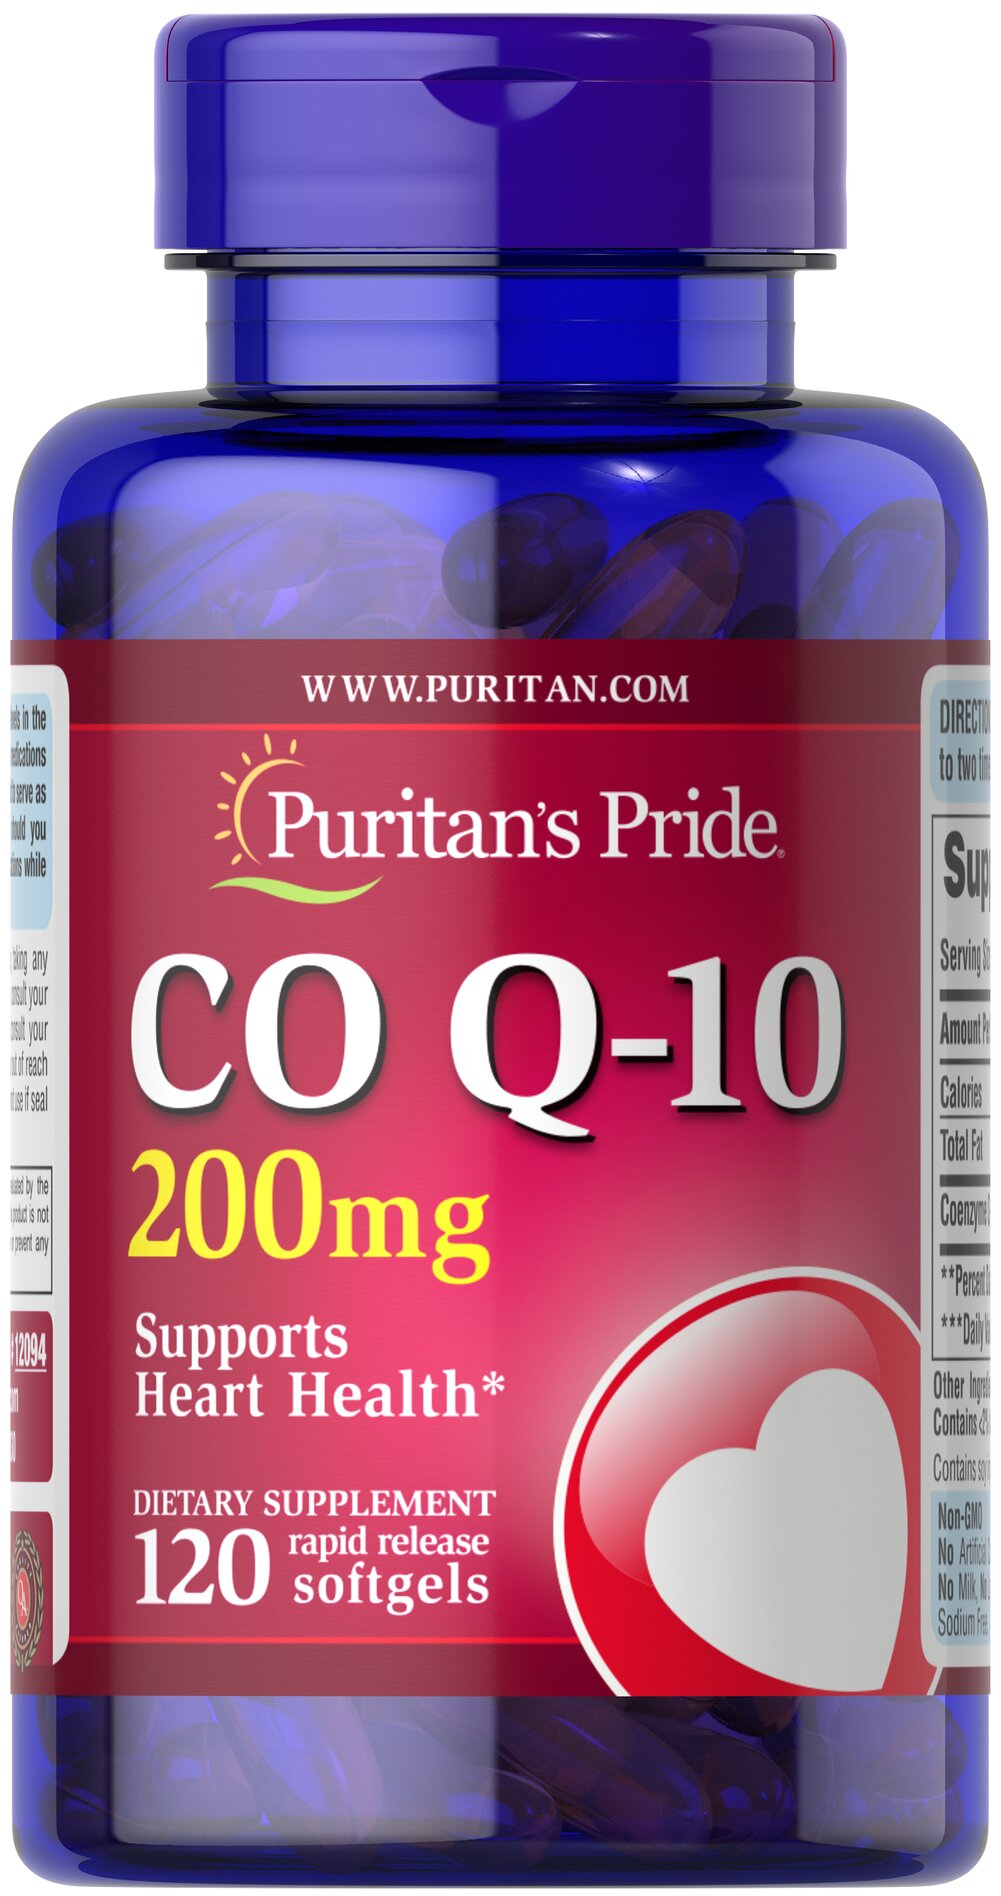 Q-SORB™ Co Q-10 200 mg  120 Rapid Release Softgels 200 mg $43.99